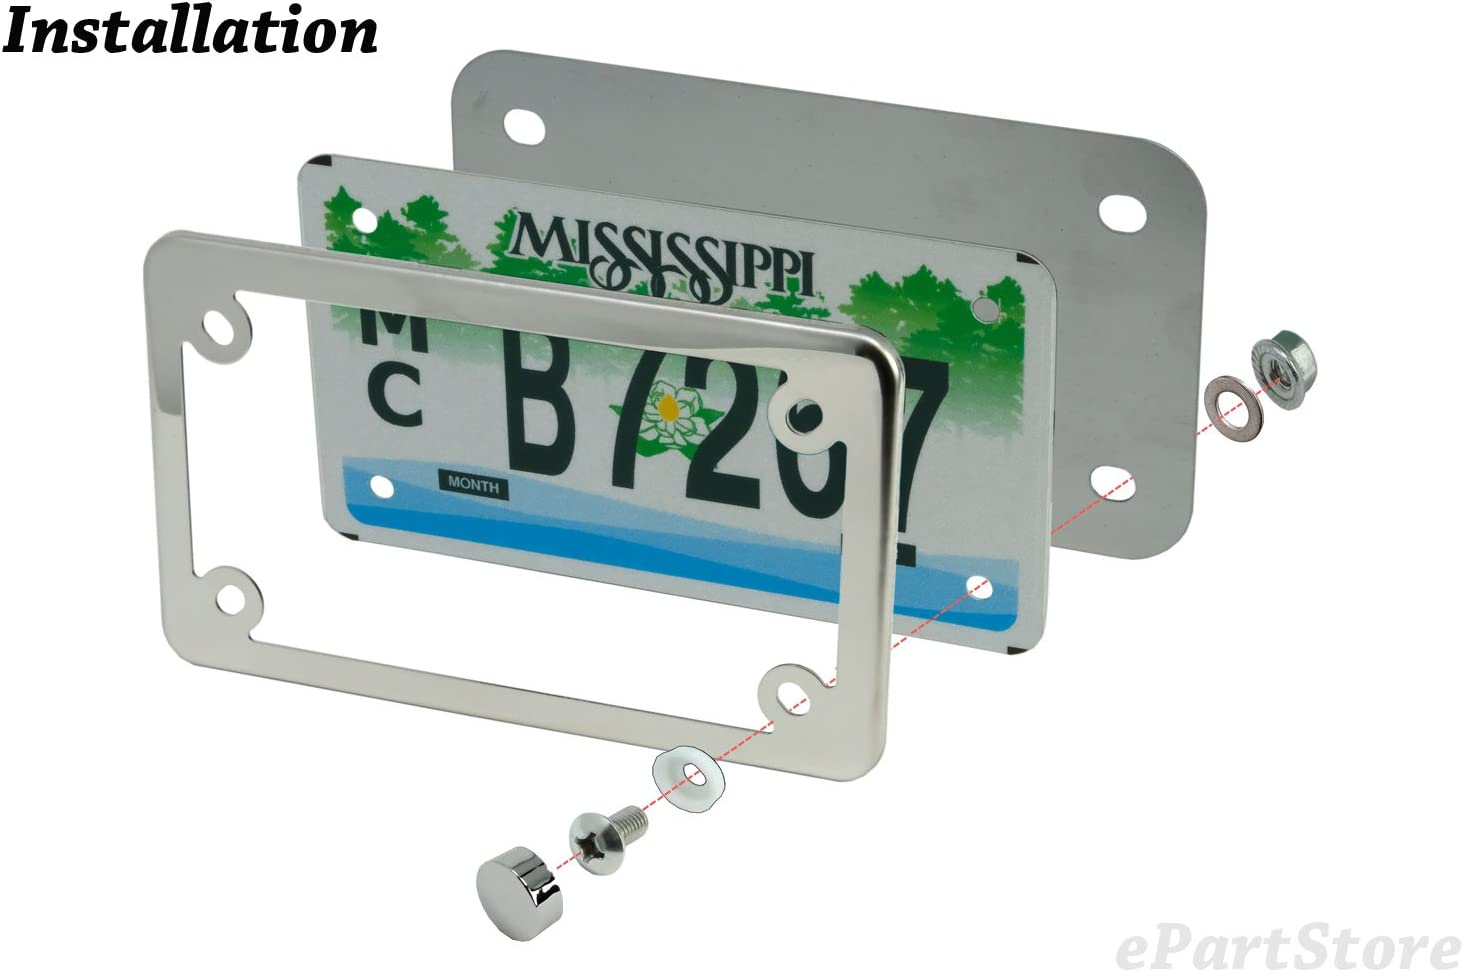 LFPartS Stainless Steel Backing Reinforce Plate for Motorcycle License Plate